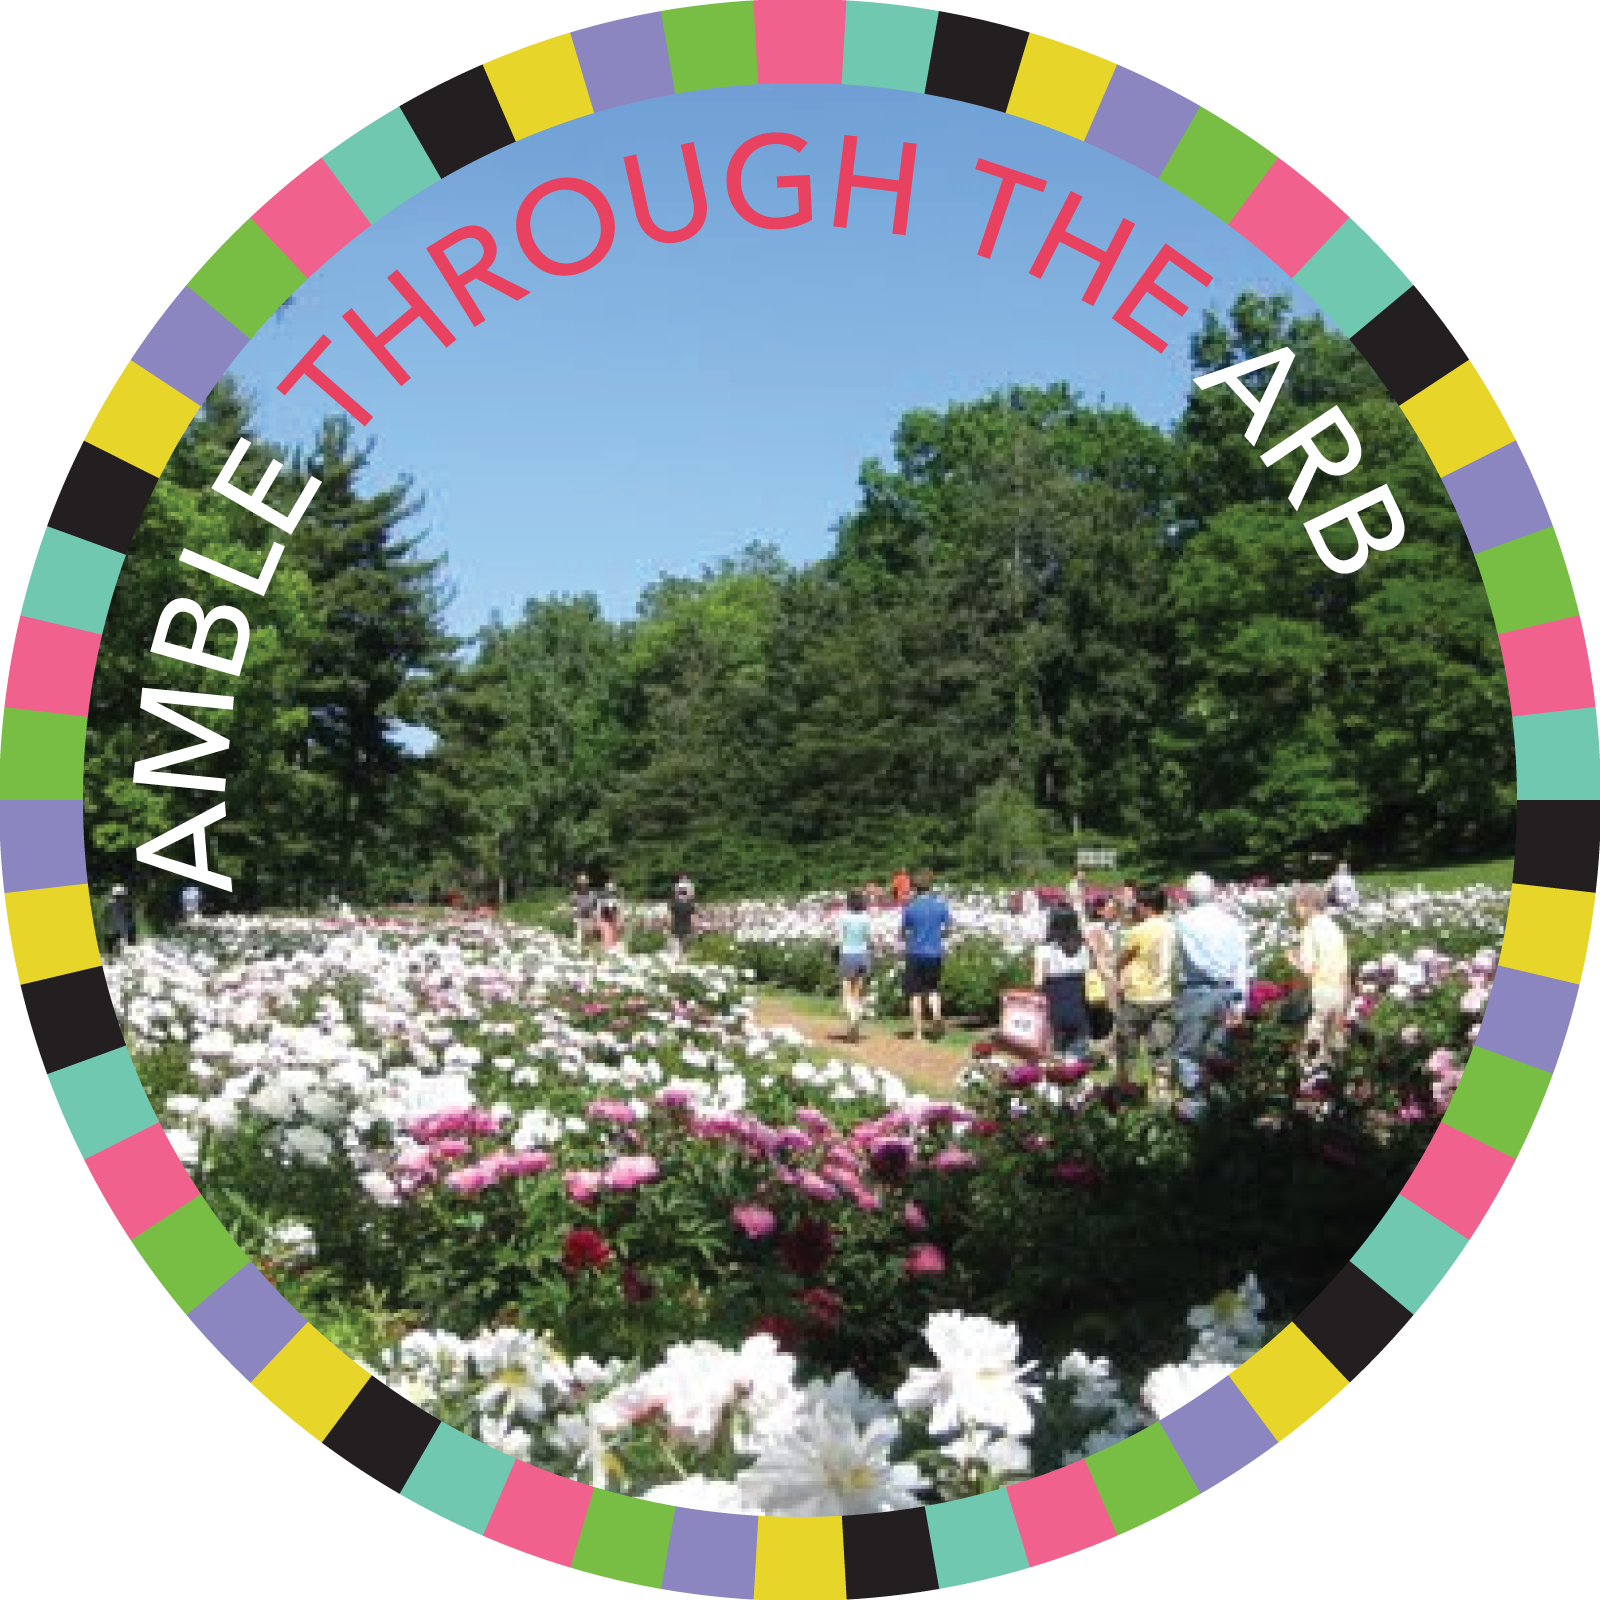 Amble through the Arb badge image